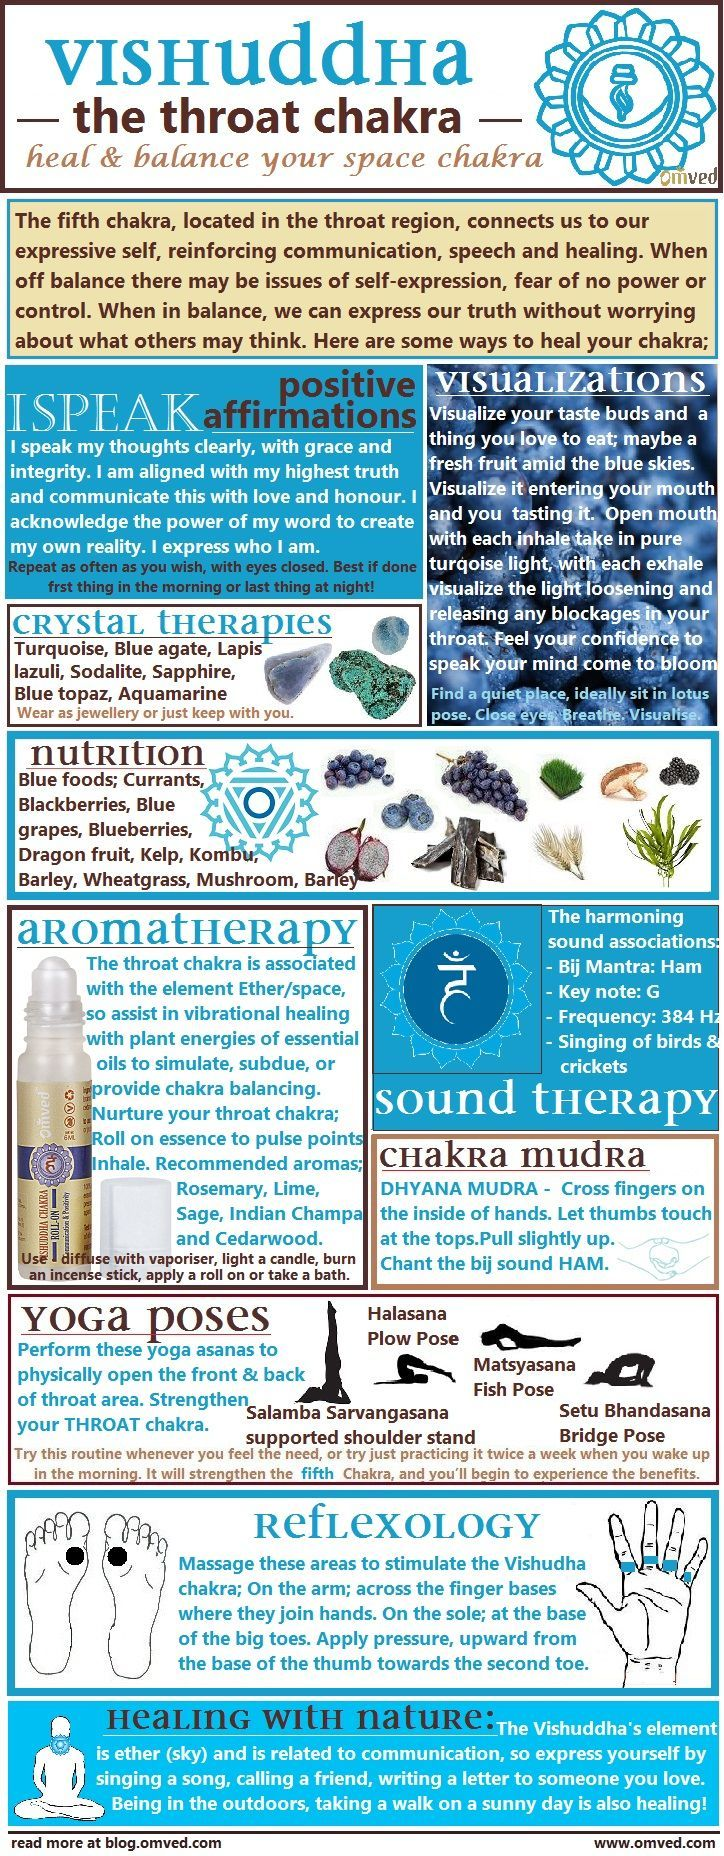 Throat Chakra Healing – Vishuddha : Located in the throat area, the 5th chakra connects us to our expressive self, reinforcing communication, speech, and healing. When in balance, we can express our truth without fear and worry about what others think. When out of balance, issues of self-expression and the fear of no power or […]